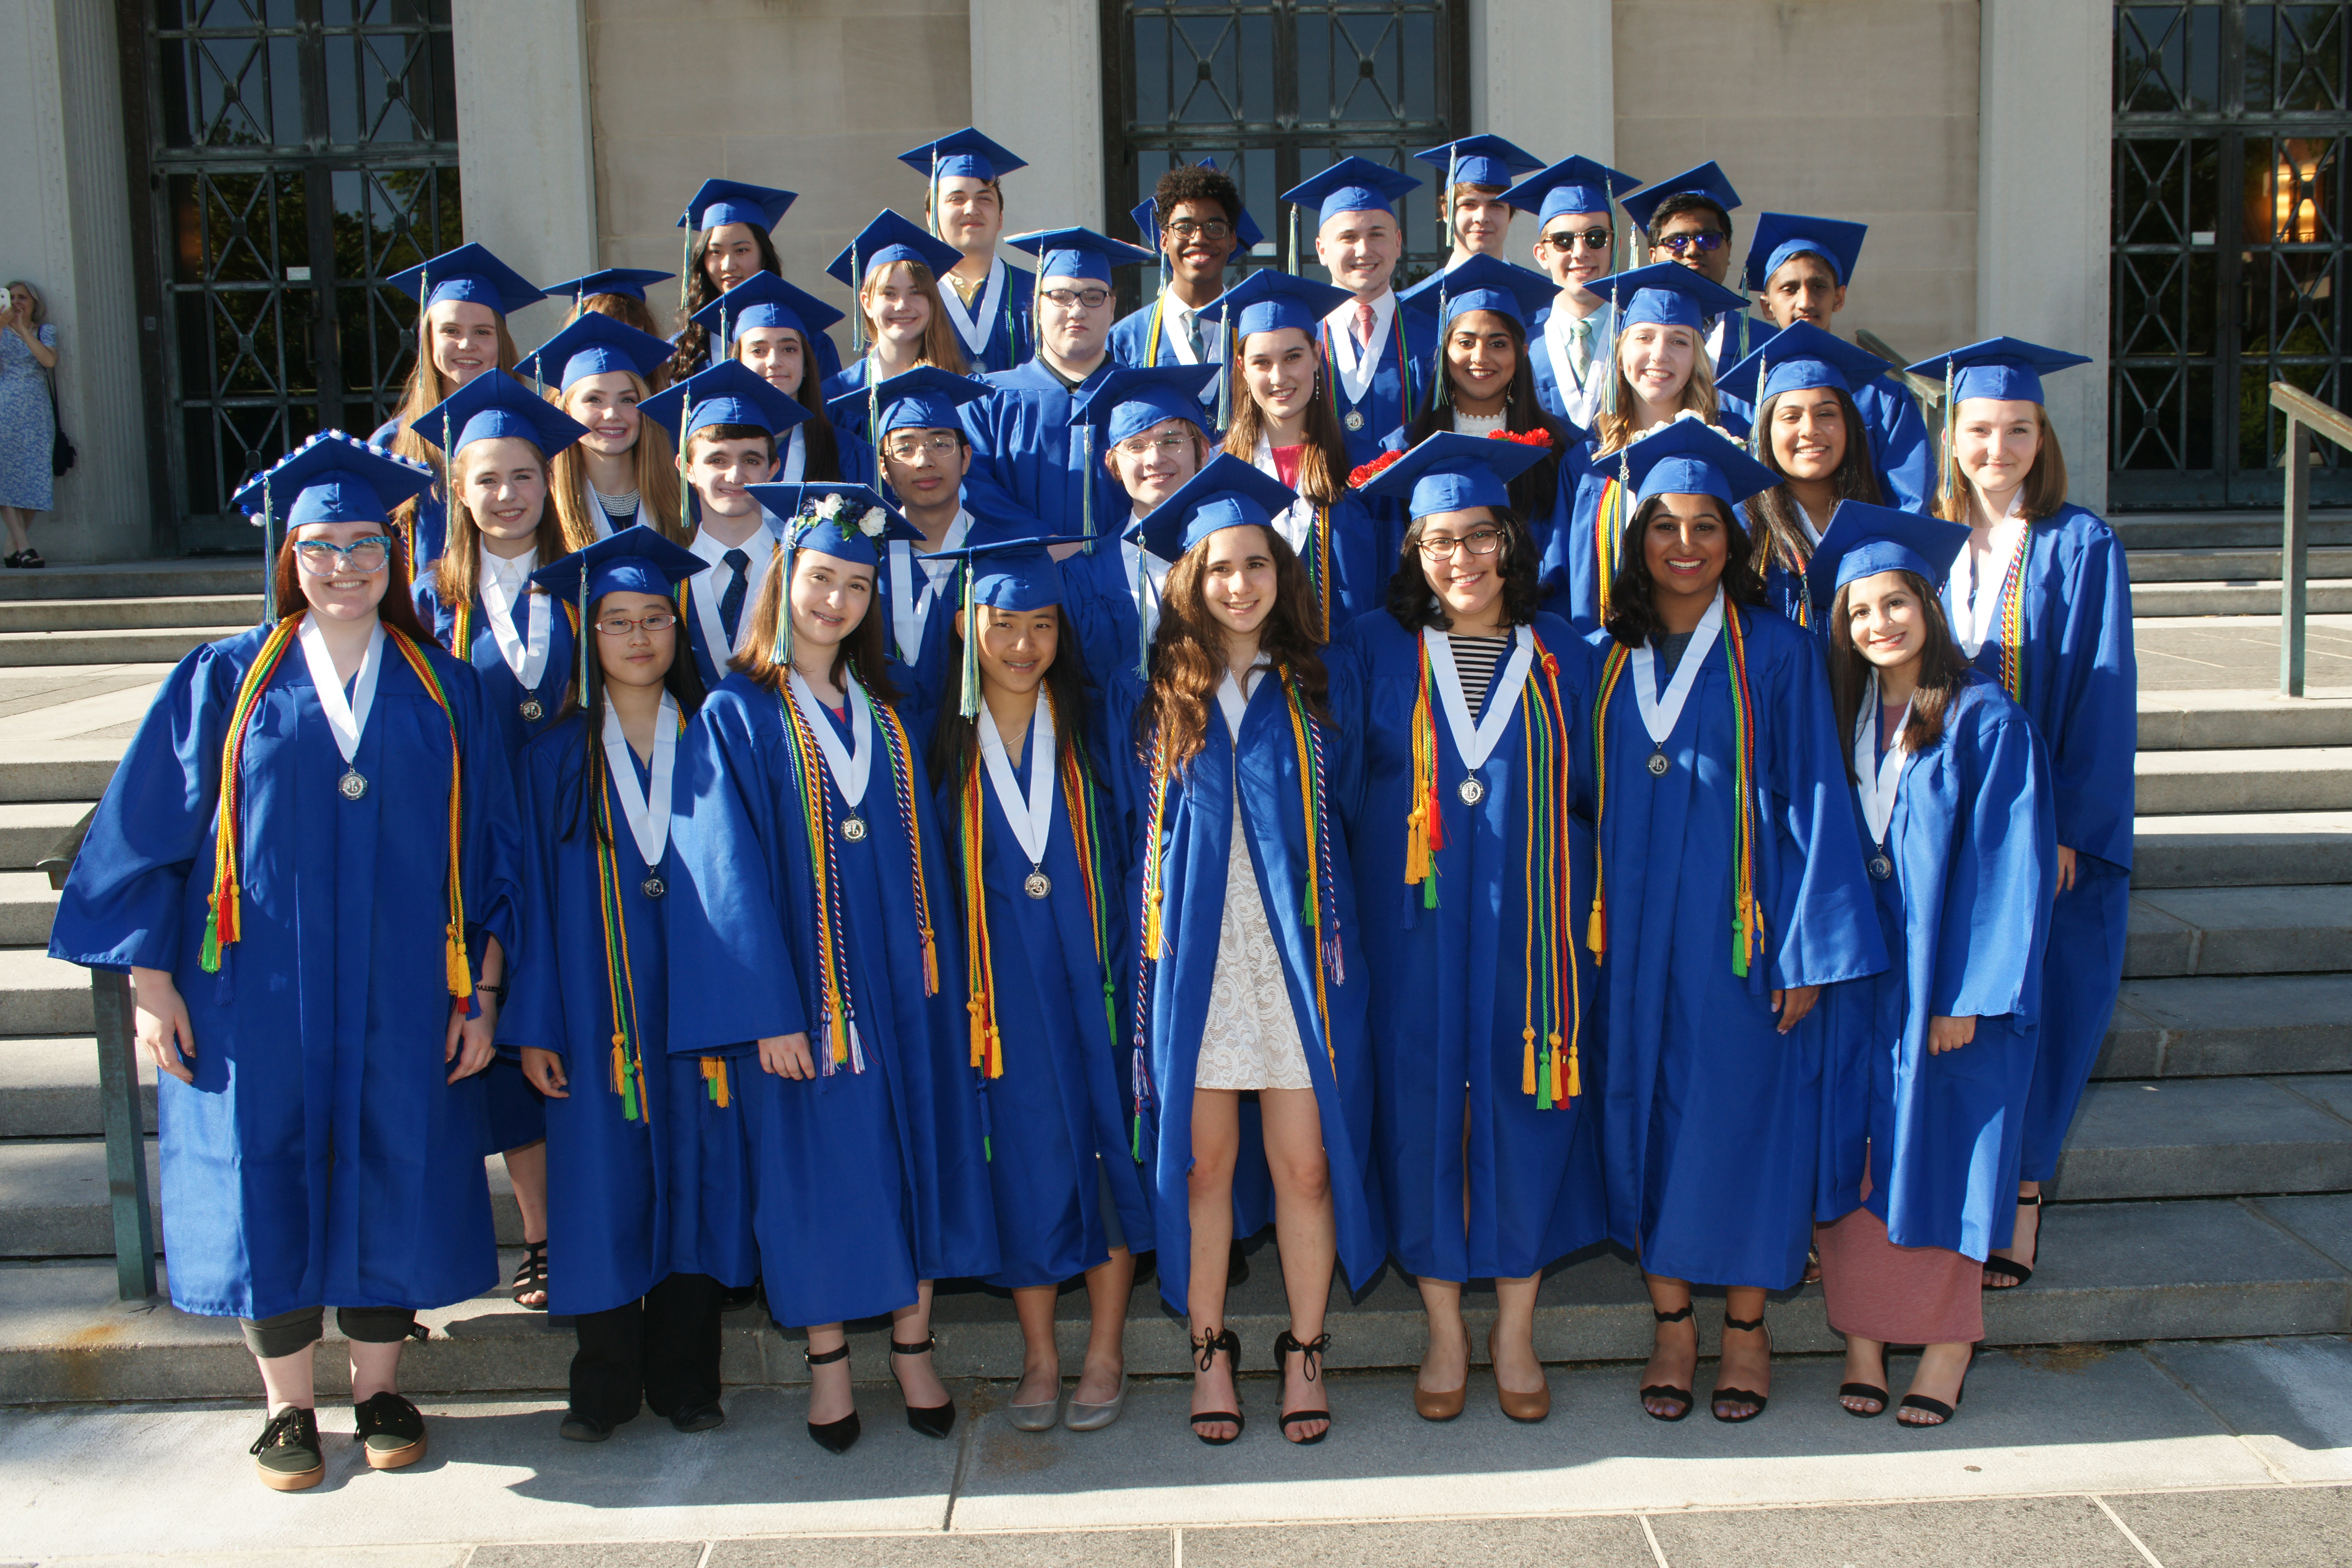 the 31 AAPS graduates in the Washtenaw International High School Class of 2018 stand in front of Rackham Auditorium in their blue caps and gowns